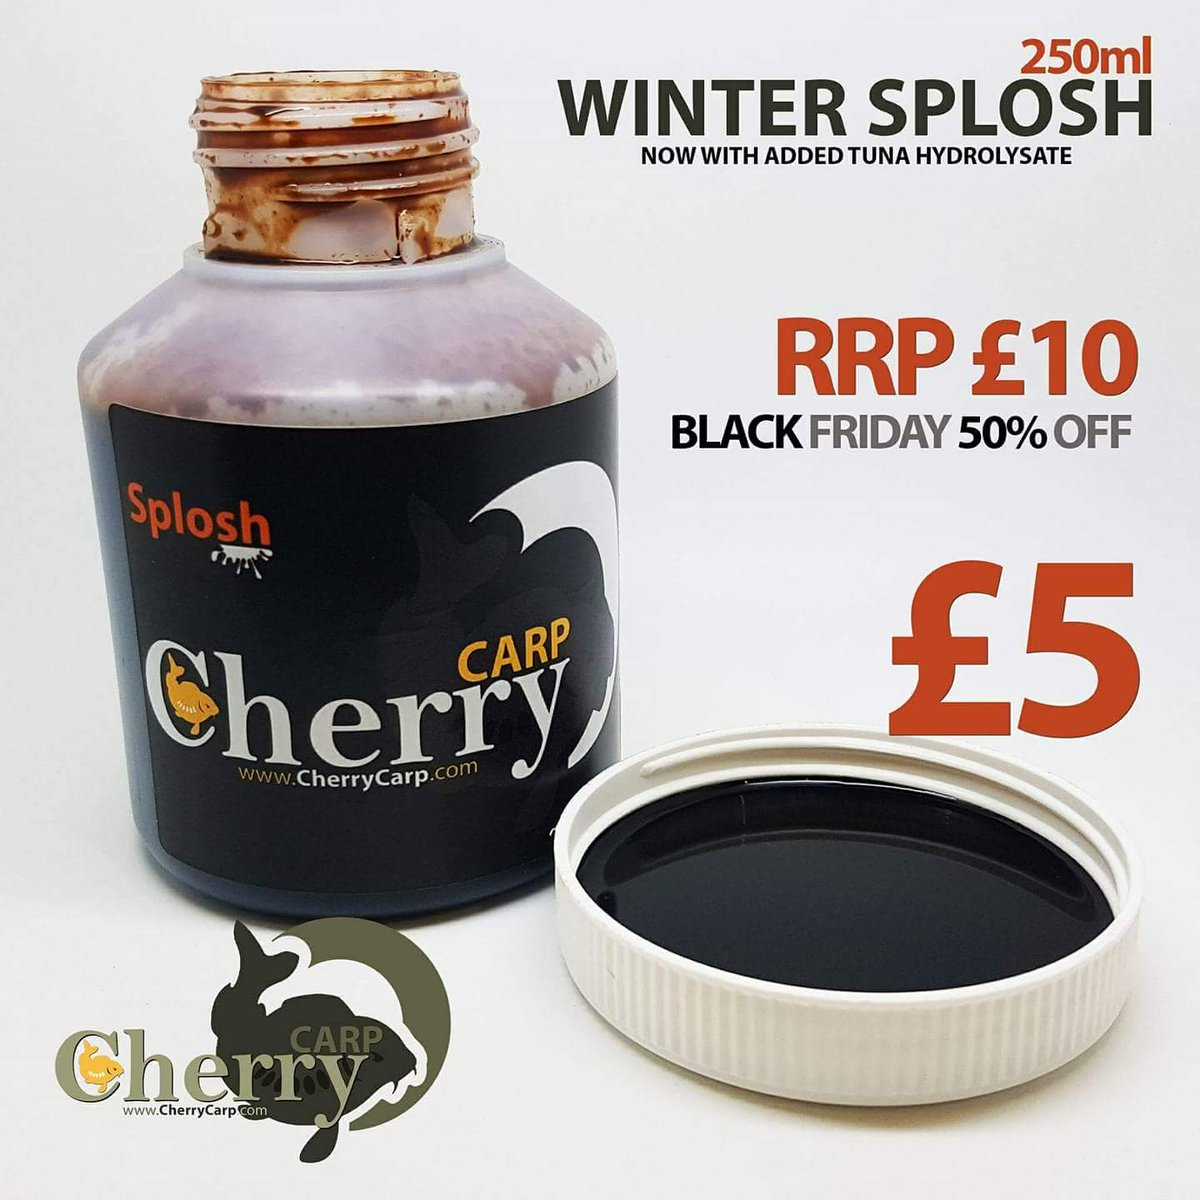 https://t.co/QUlZKkltdC https://t.co/aS17tc8lXG @cherry_carp #carpfishing #bait #ukcarp #<b>Popup</b